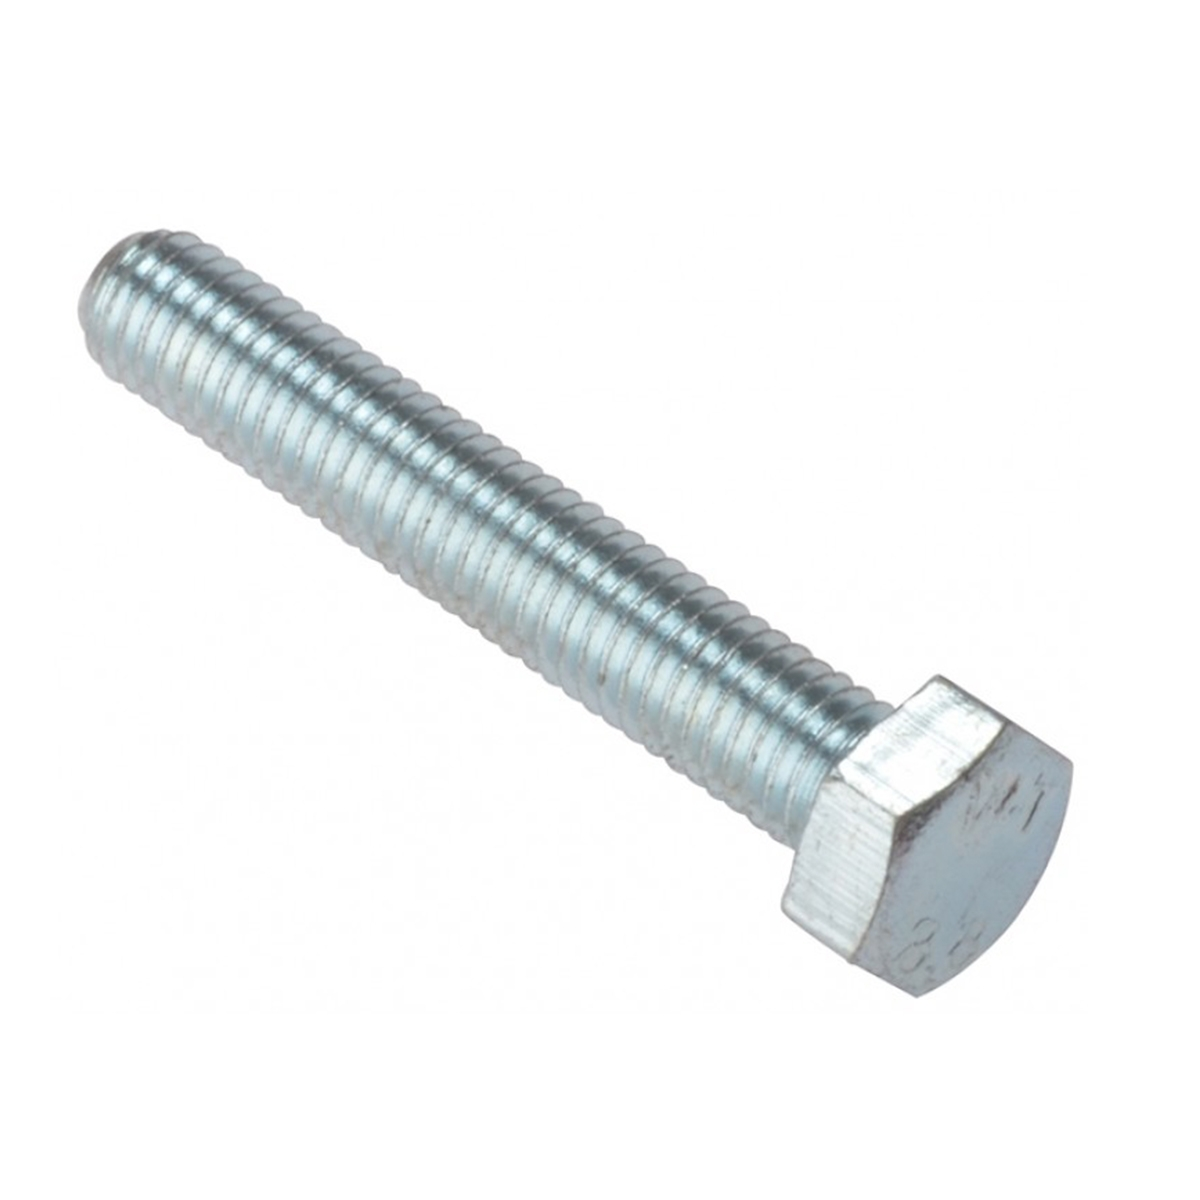 Hexagon Set Screws